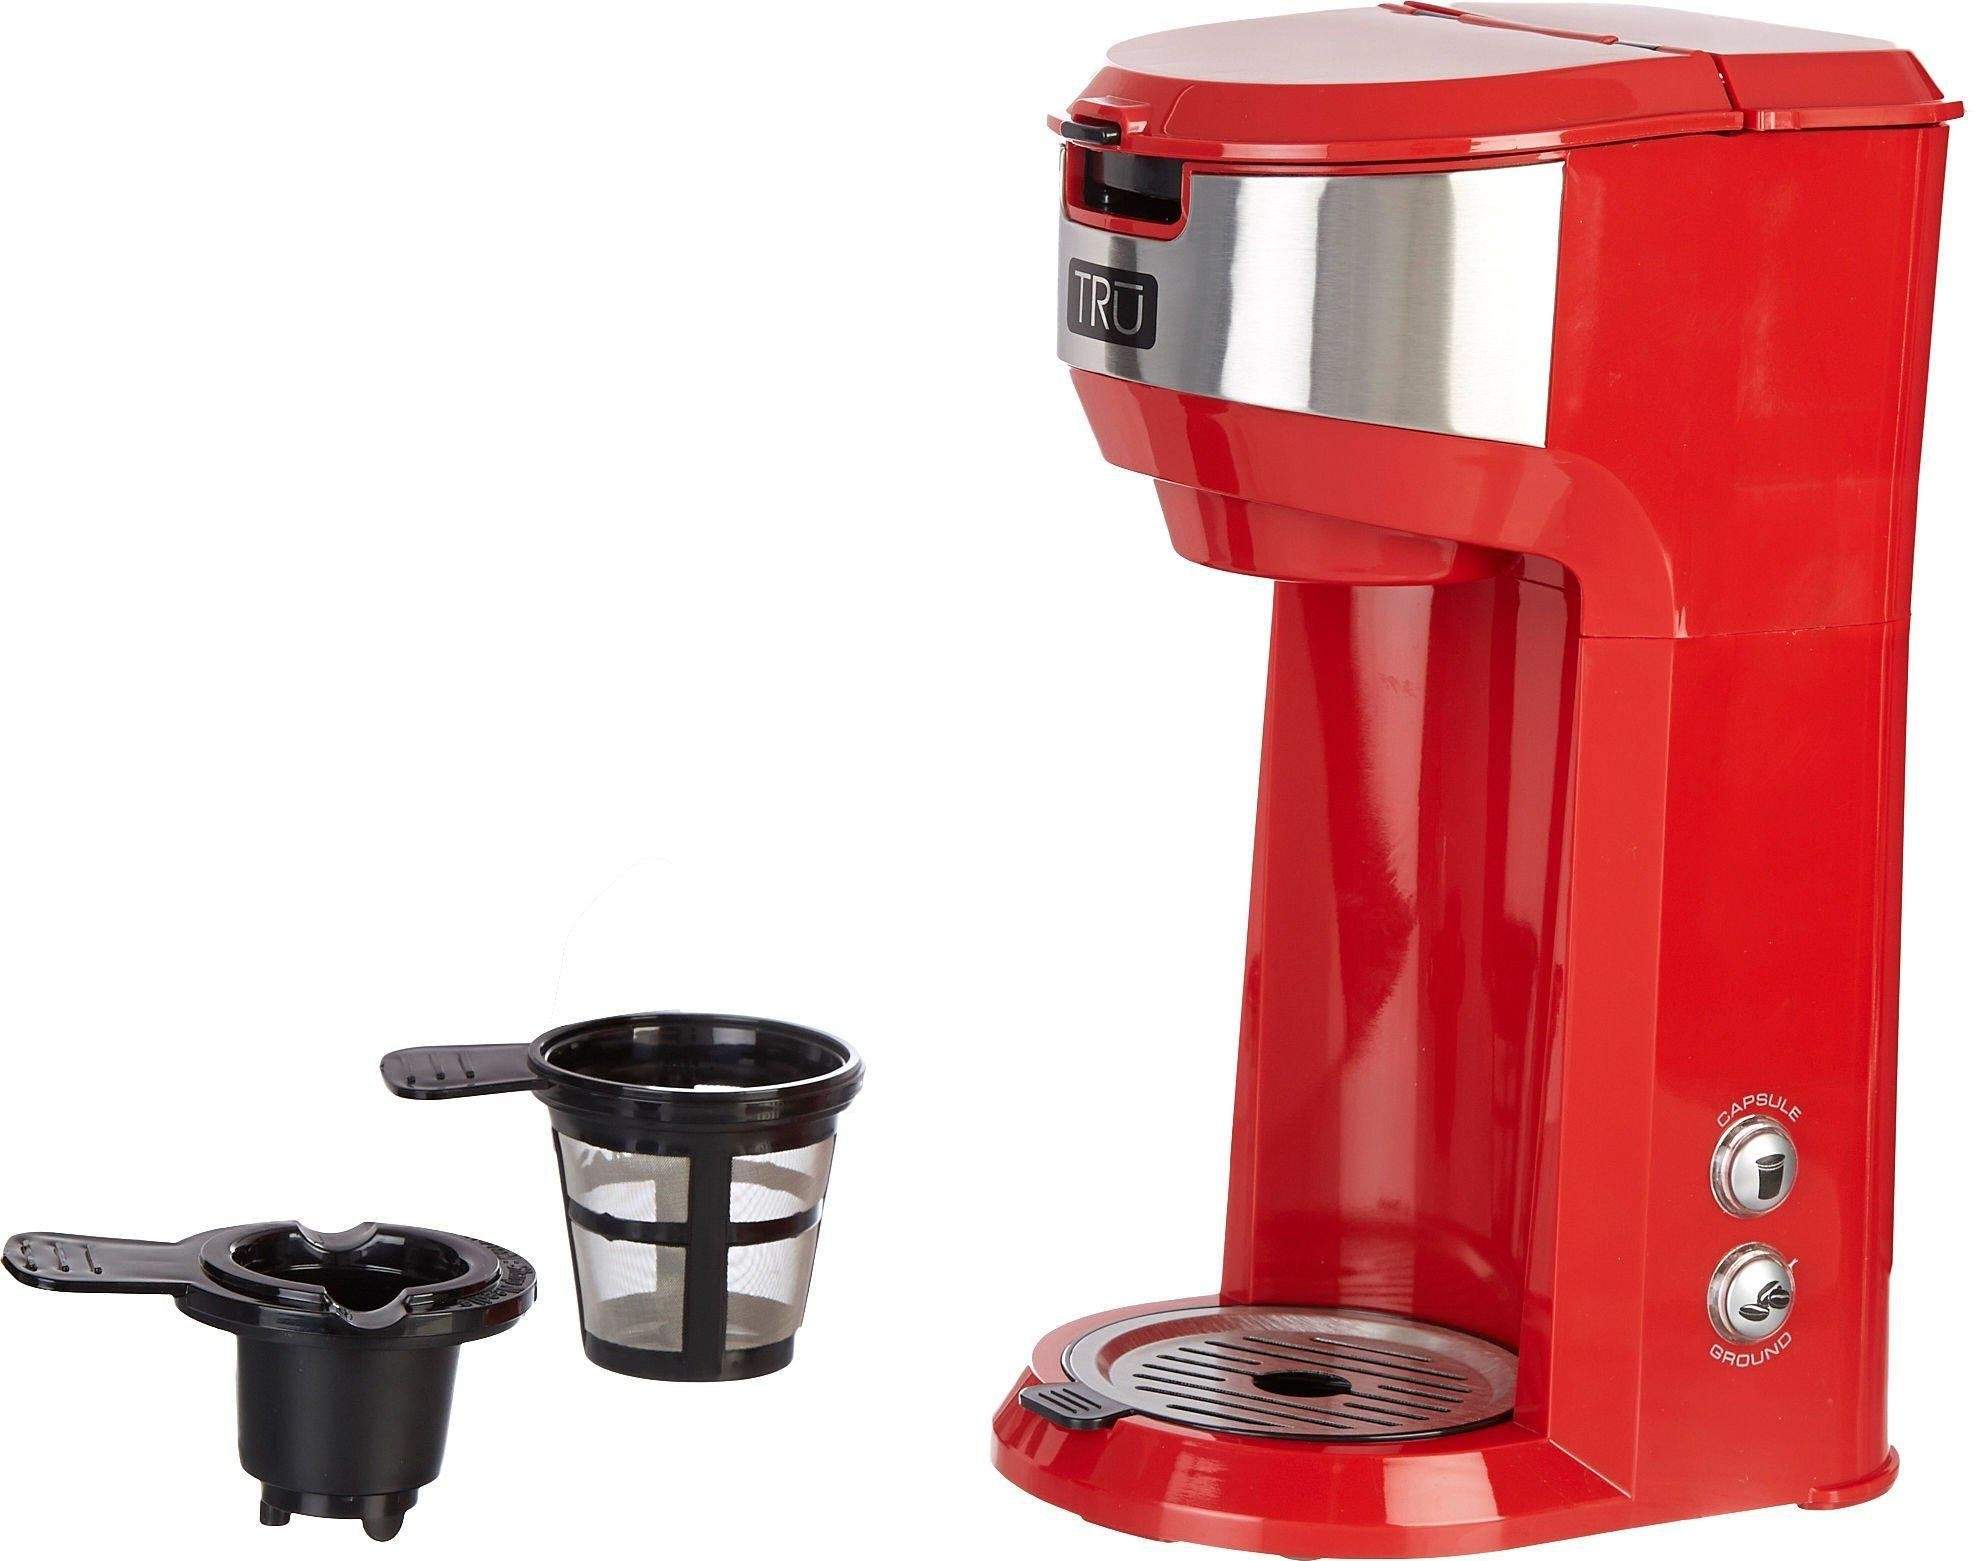 Coffee Maker Dual Brew : TRU Red Dual Brew Coffee Maker Bealls Florida